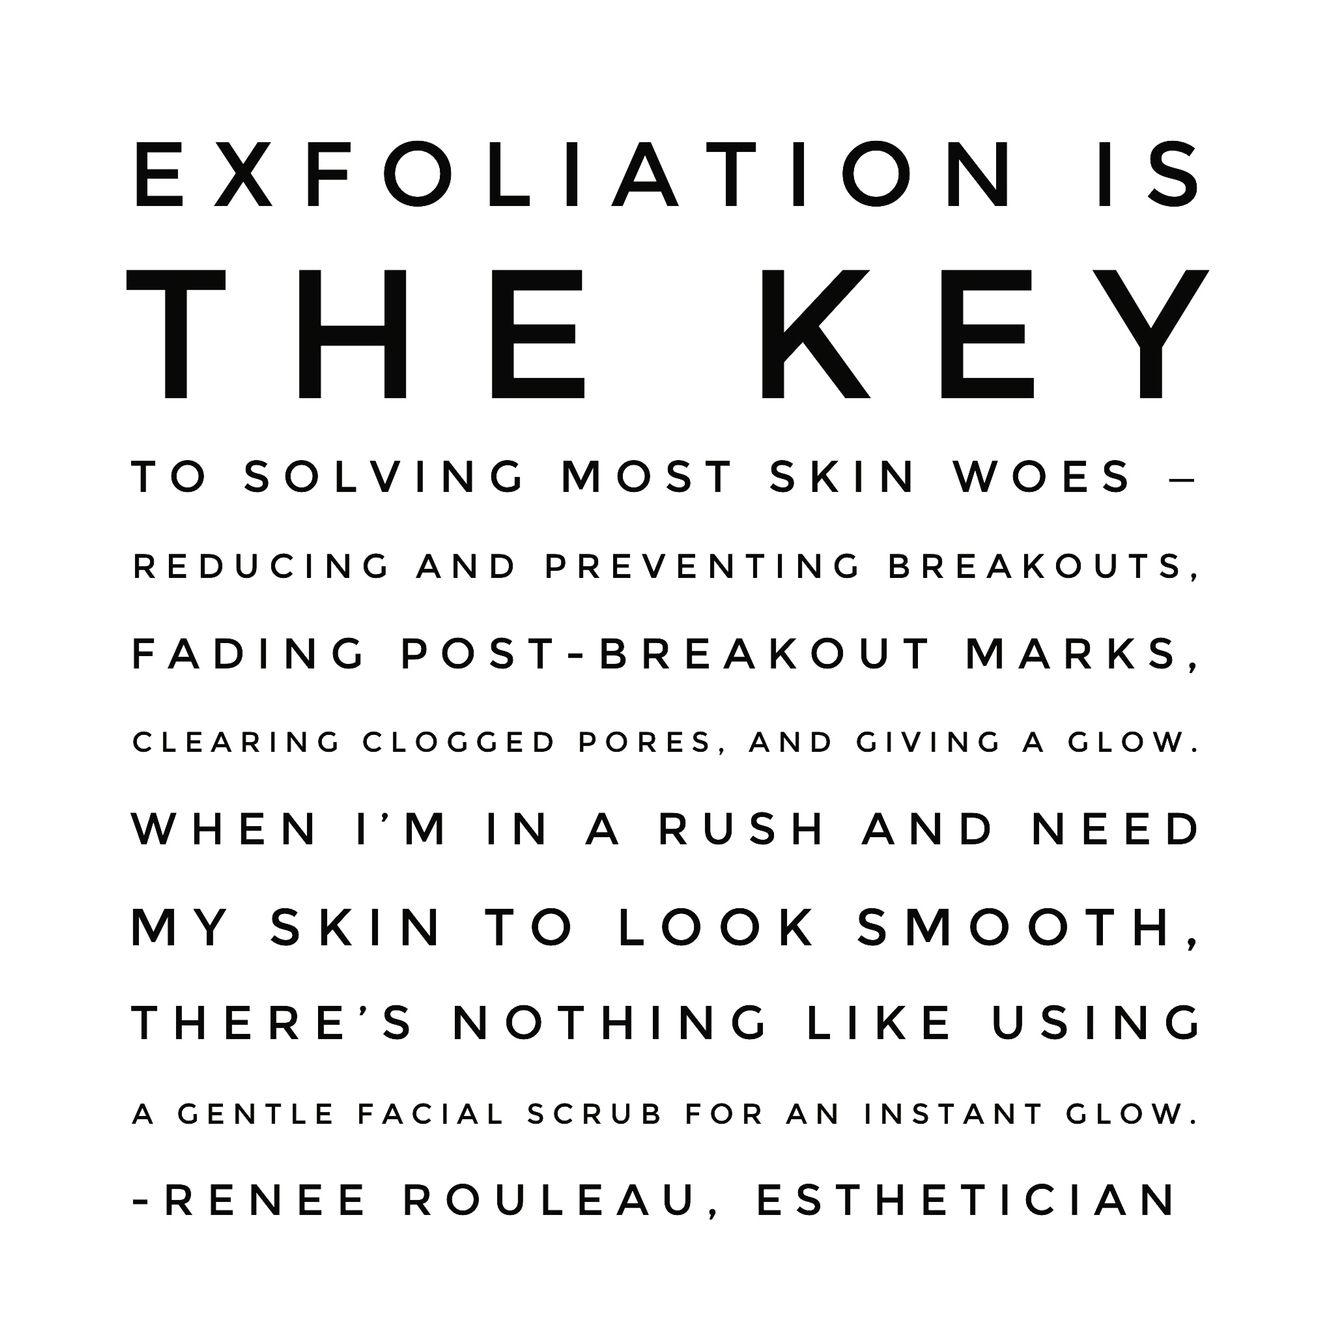 The Importance Of Skin Exfoliation  Renée Rouleau is part of How to exfoliate skin - 17  Physical or chemical exfoliation  Learn the difference and why exfoliation is so necessary for the health of the all skin types  What Is Skin Exfoliation  Exfoliation is defined as the removal of surface dry skin cells  How Do I … Continued